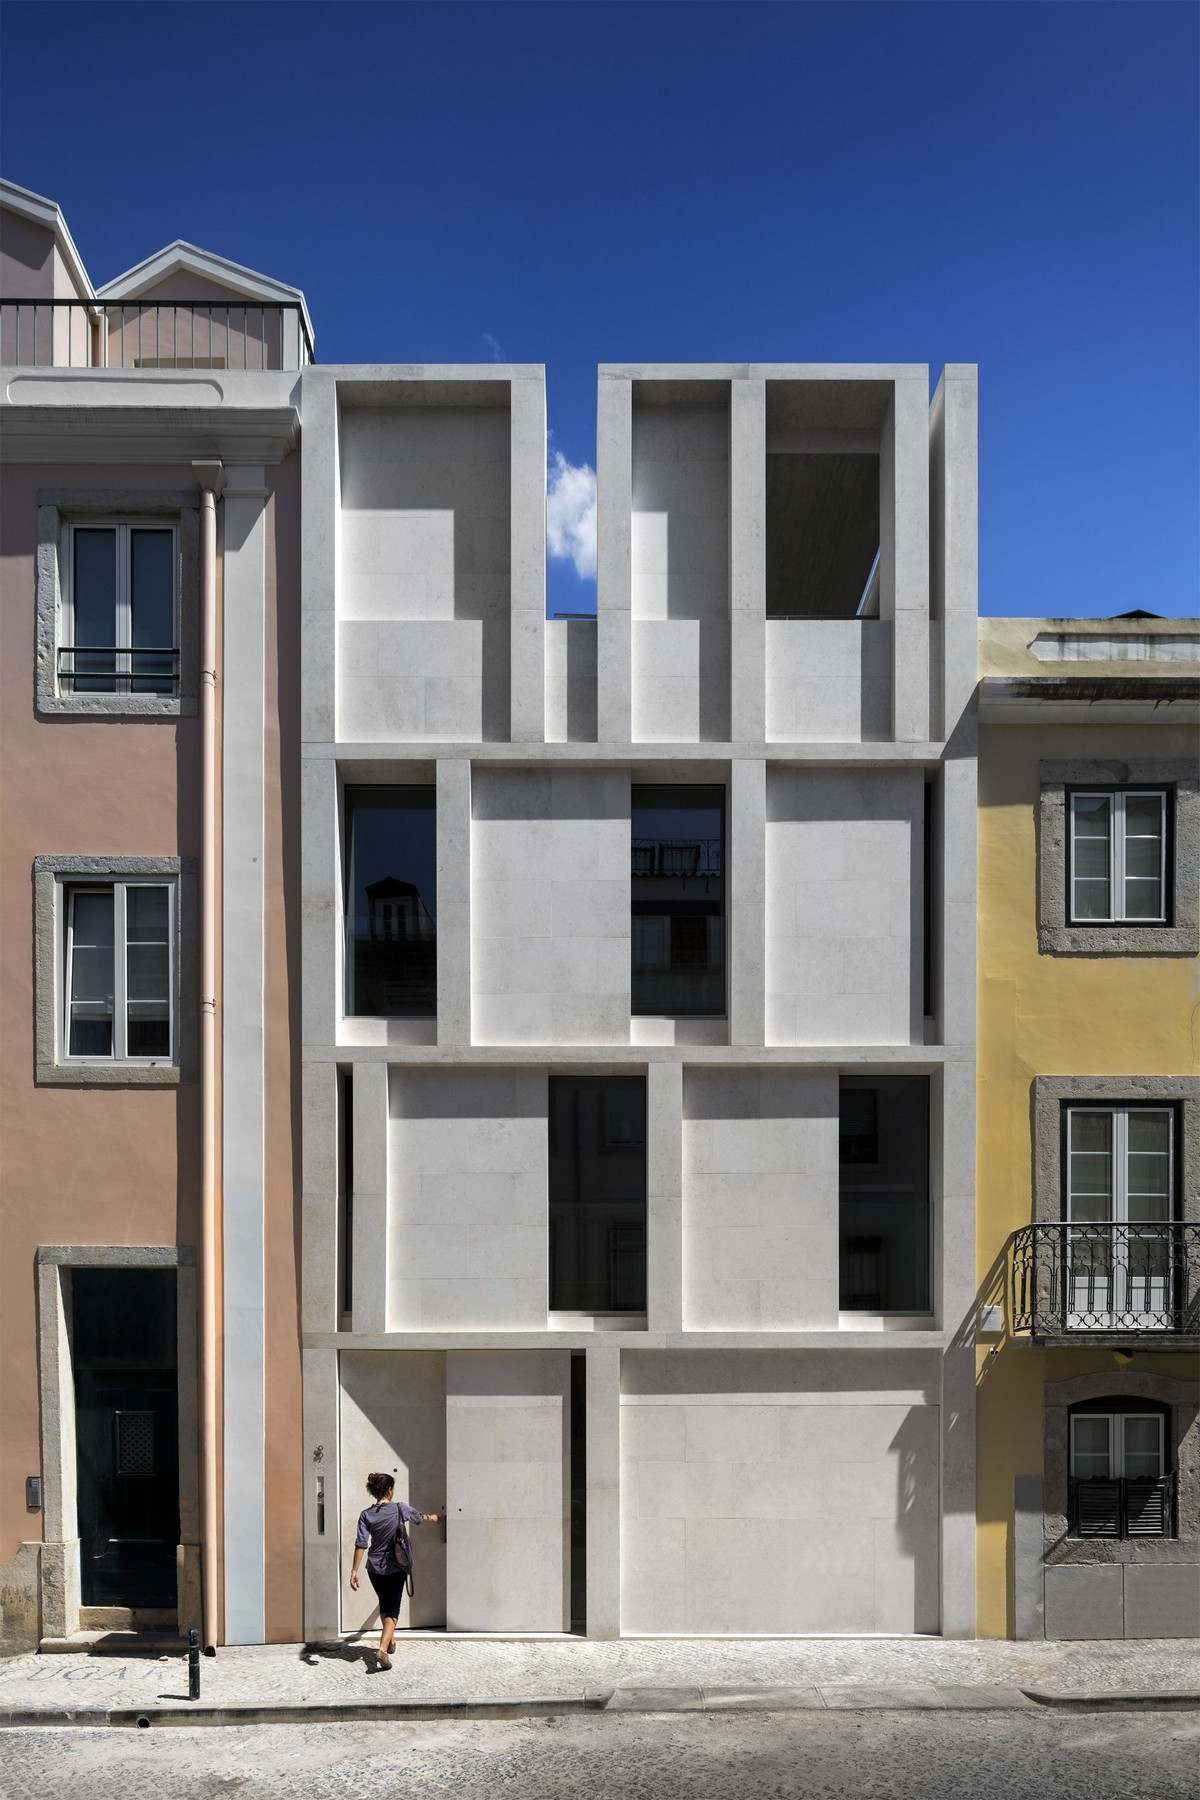 Discover The Minimalistic Architecture Of This Lisbon House minimalistic architecture Discover The Minimalistic Architecture Of This Lisbon House Discover The Minimalistic Architecture Of This Lisbon House 1